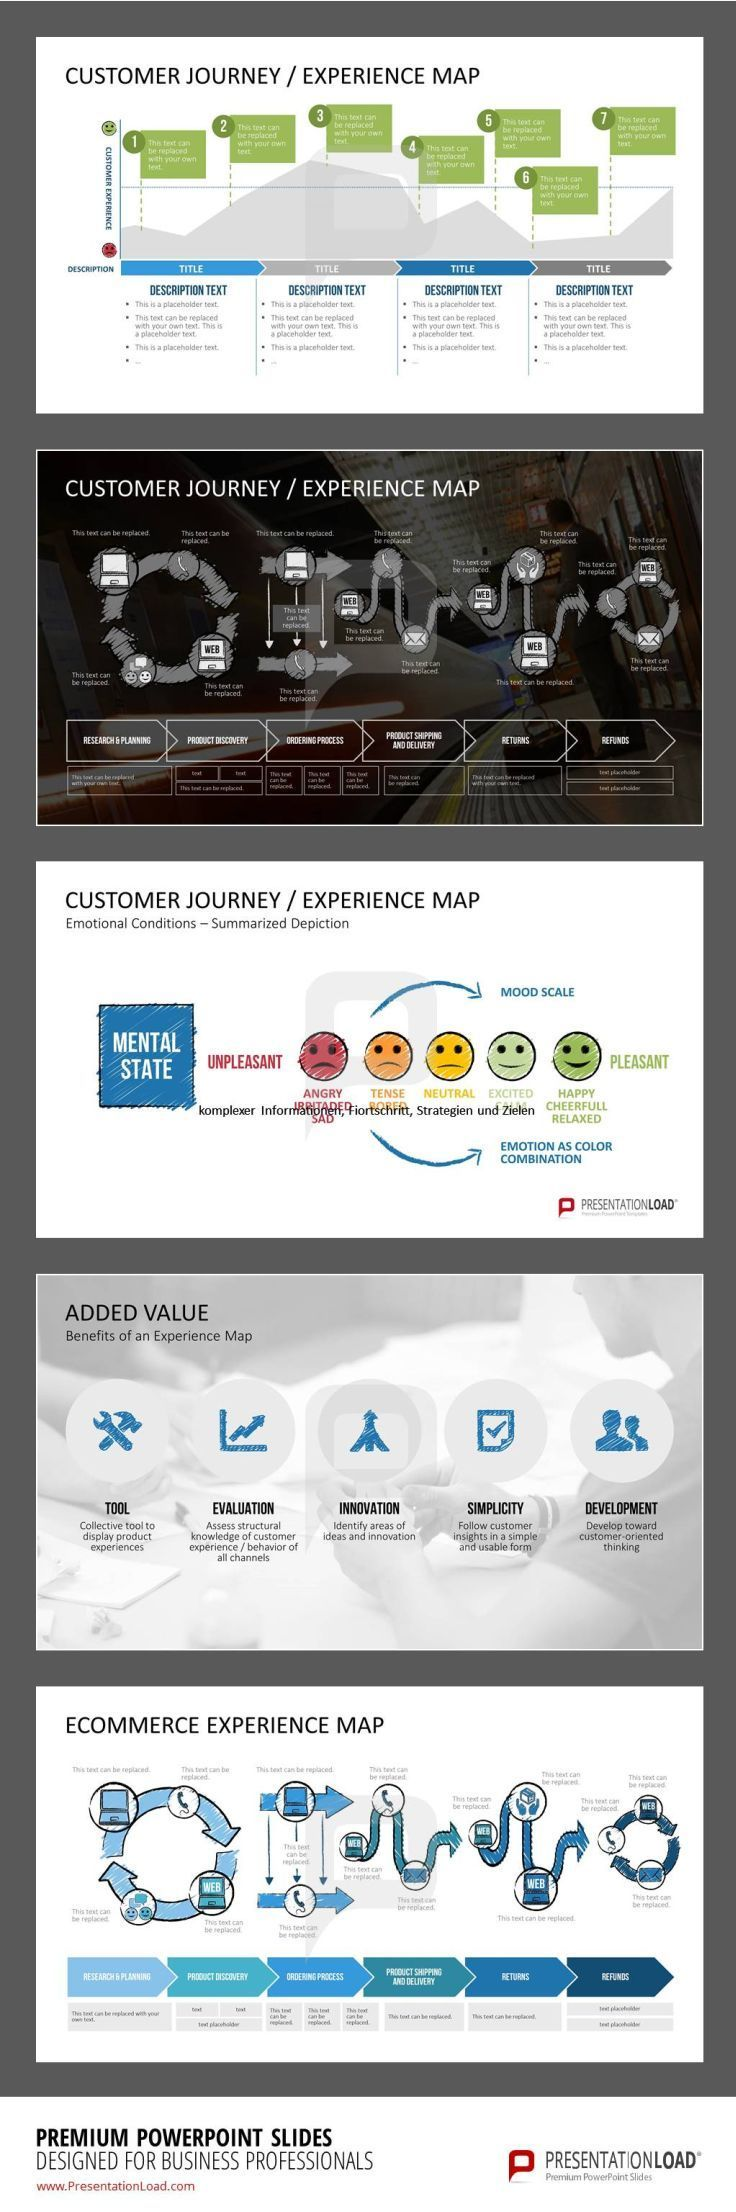 Customer Journey/ Experience Map. If you're a user experience professional, listen to The UX Blog Podcast on iTunes.